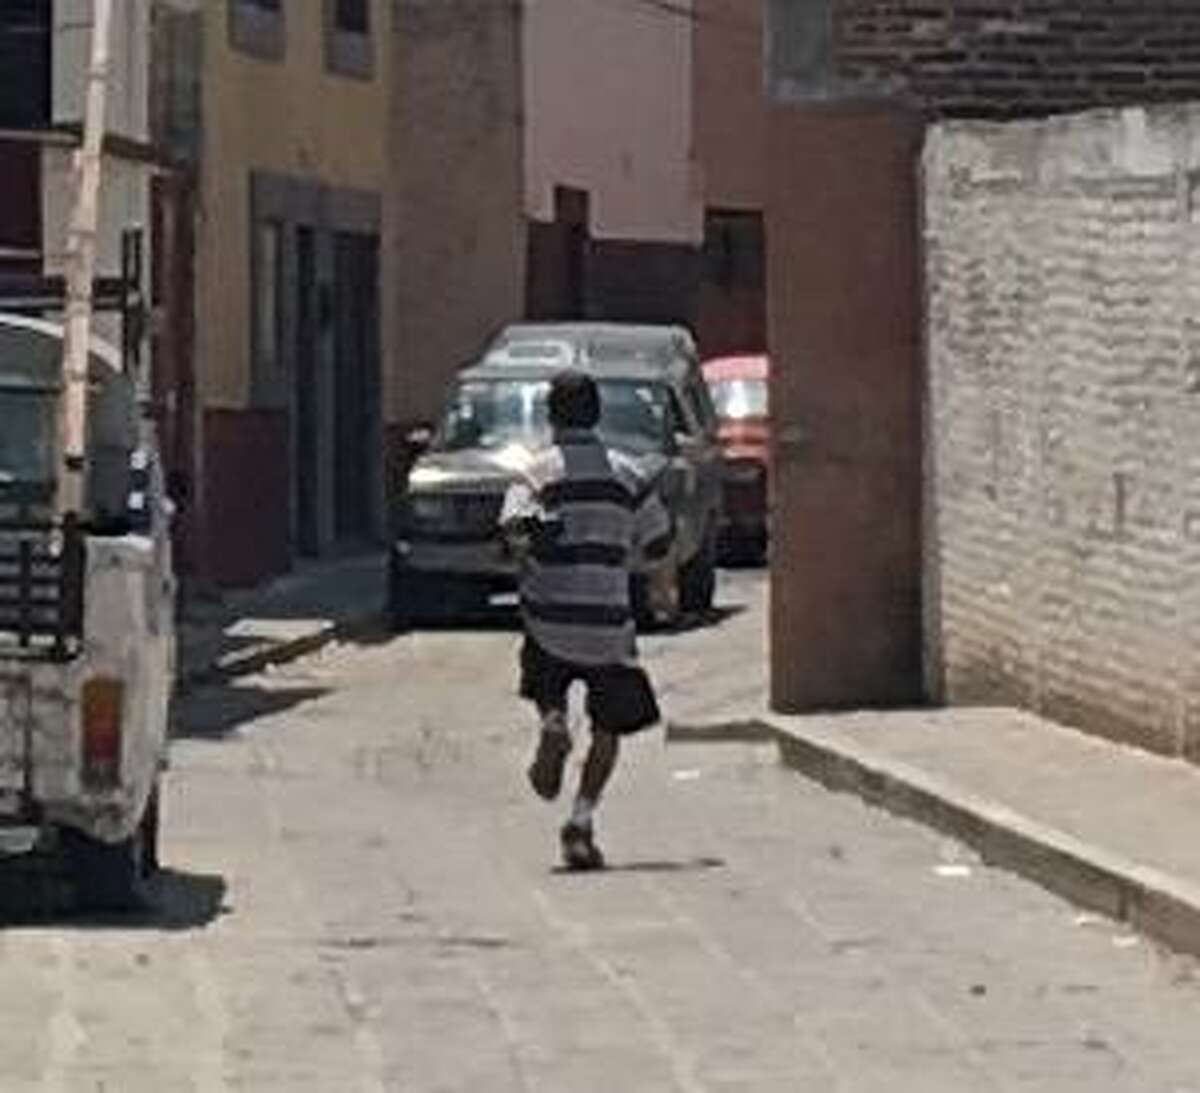 When Dwight Silverman's phone was stolen in 2017 in San Miguel de Allende, Mexico, his wife ised her iPhone to snap this photo of the thief as he sprinted away.